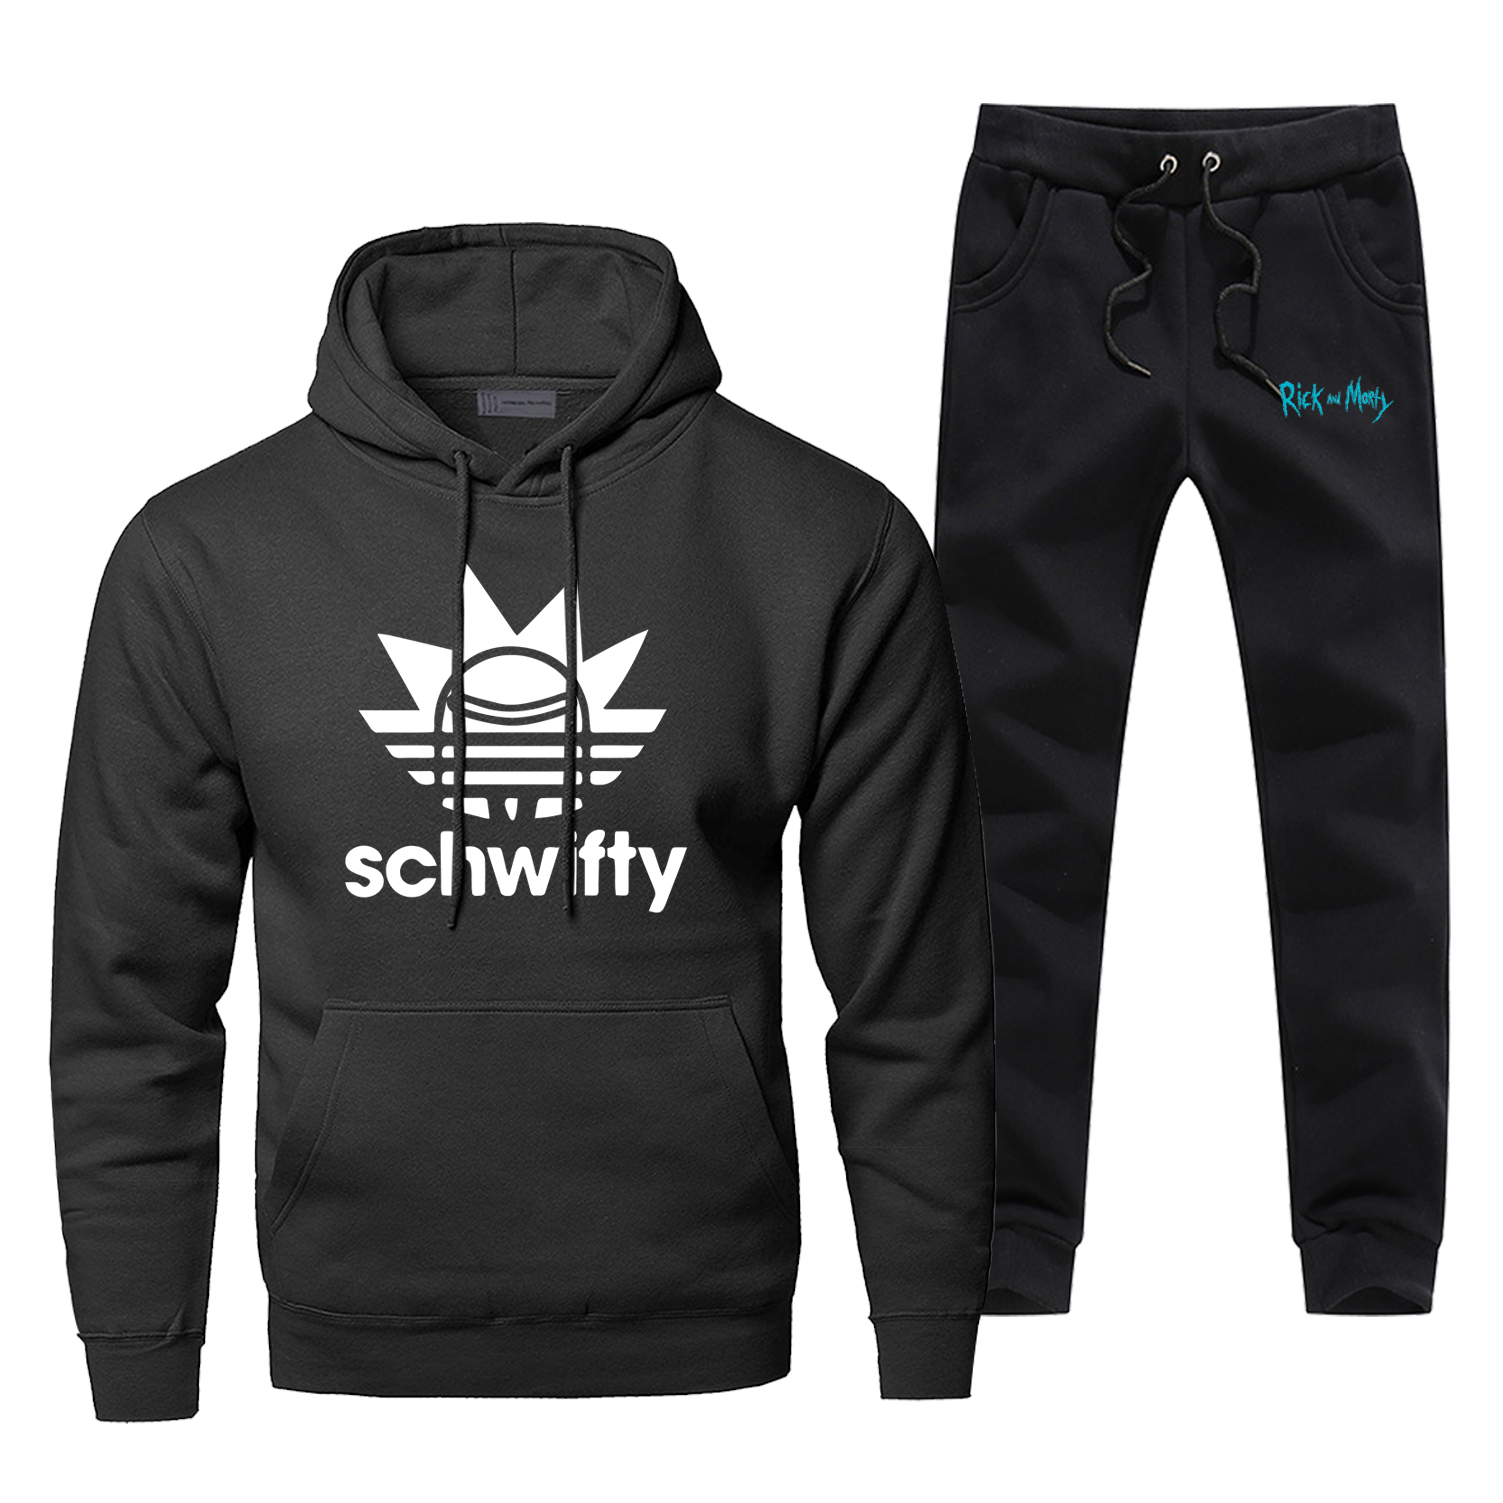 Rick And Morty Schwifty Sweatshirt Hoodies Pants 2piece Sets Men Casual Fleece Sportswear Sweatpants Fashion Hip Hop Streetwear